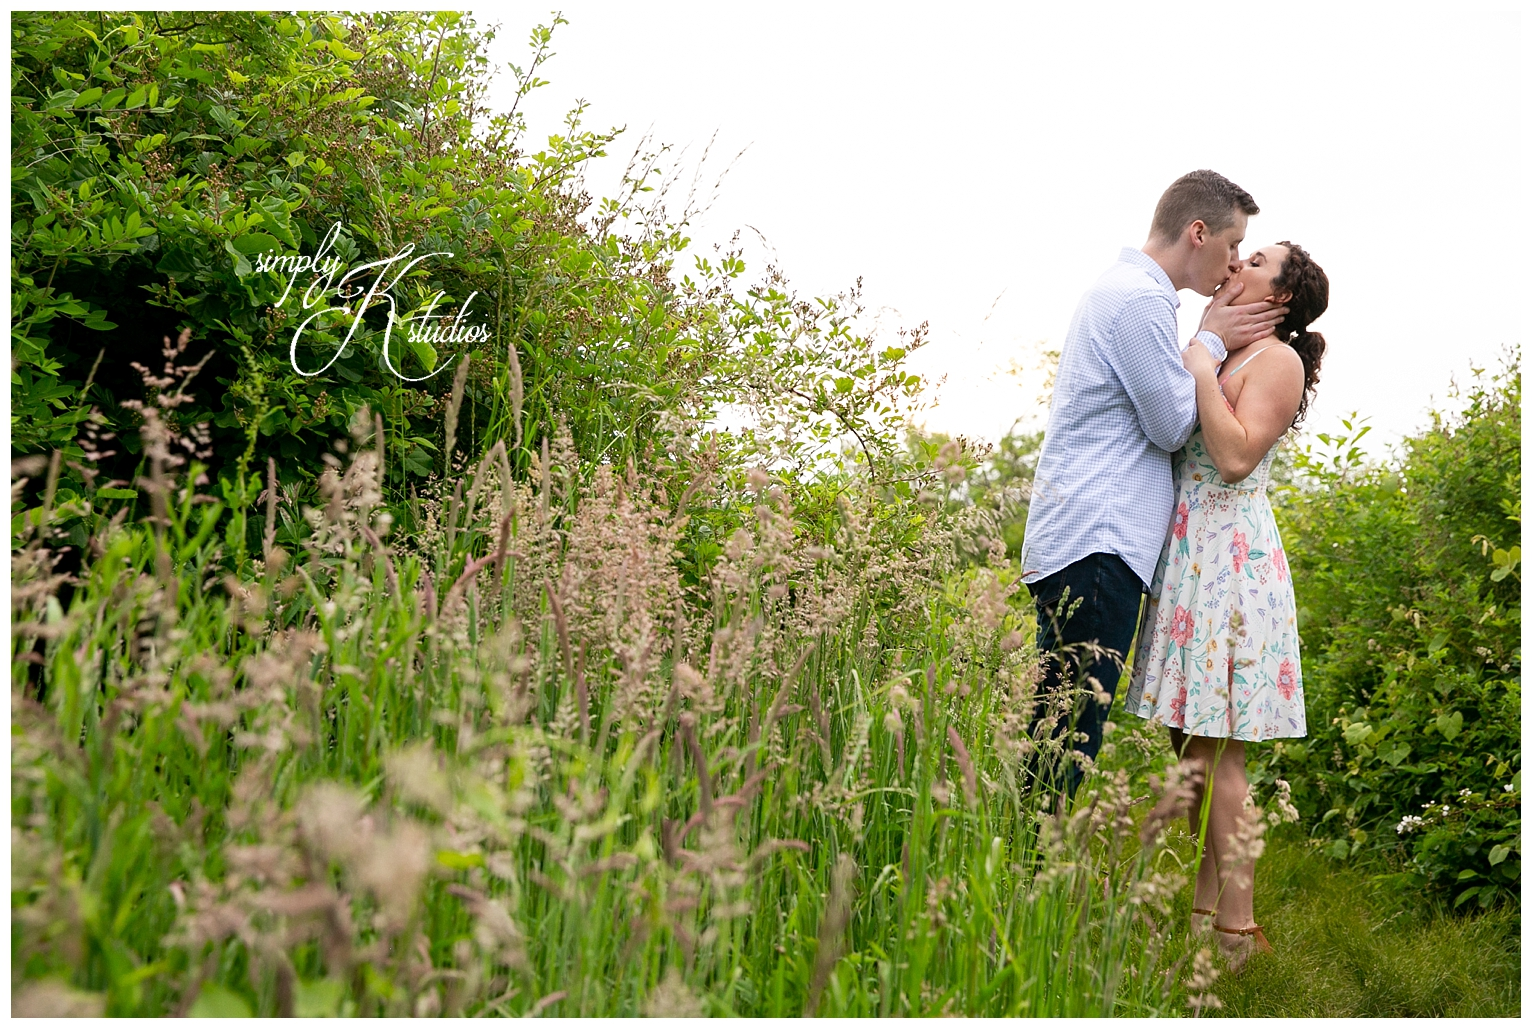 Rustic Wedding Photographers in CT.jpg